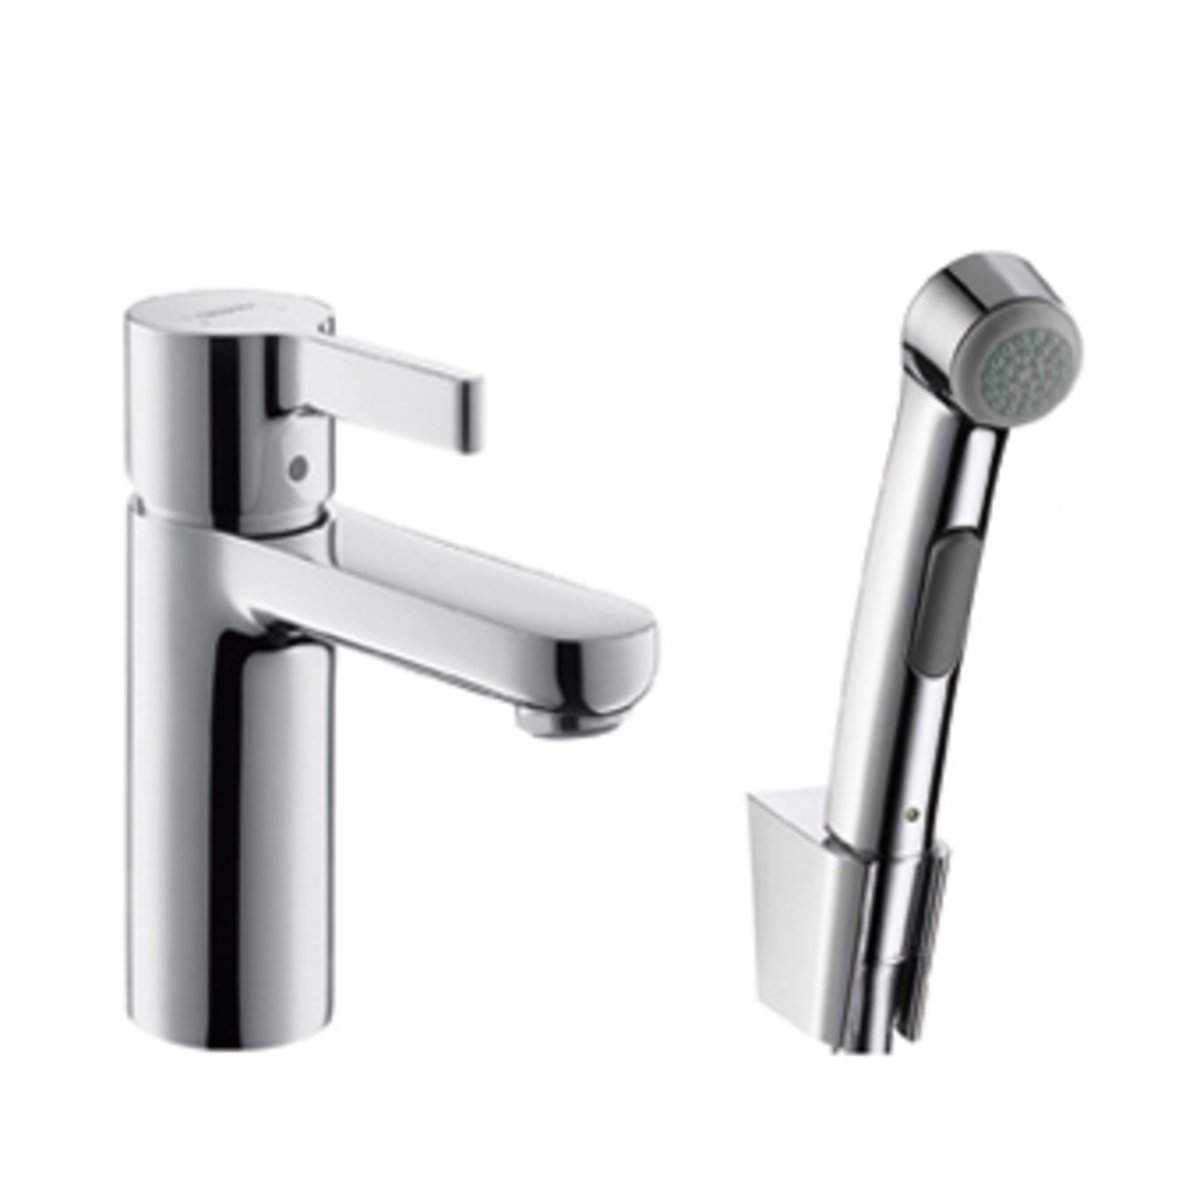 hansgrohe metris s robinet pour lavabo avec douchette de bidet chrome 31160000. Black Bedroom Furniture Sets. Home Design Ideas